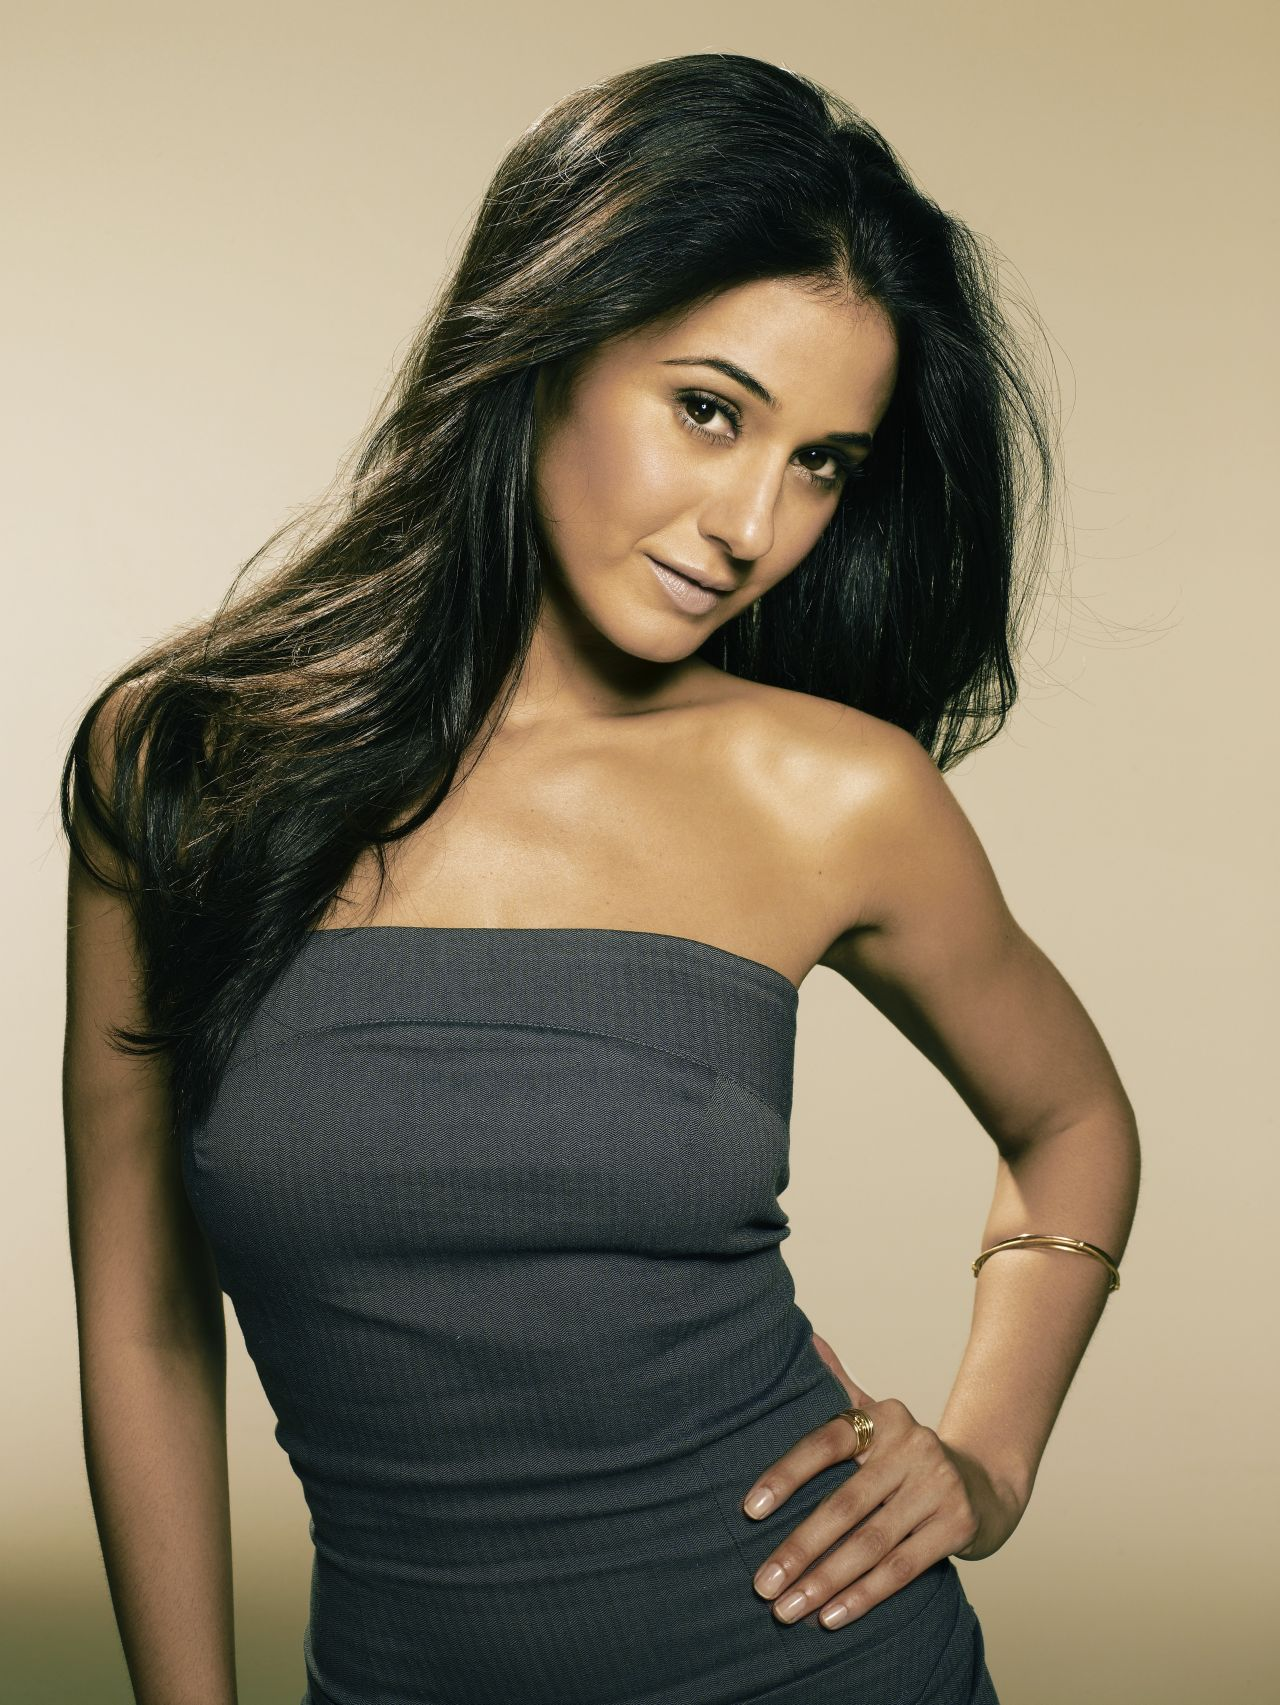 Emmanuelle Chriqui Photoshoot by James Dimmock - Year 2013